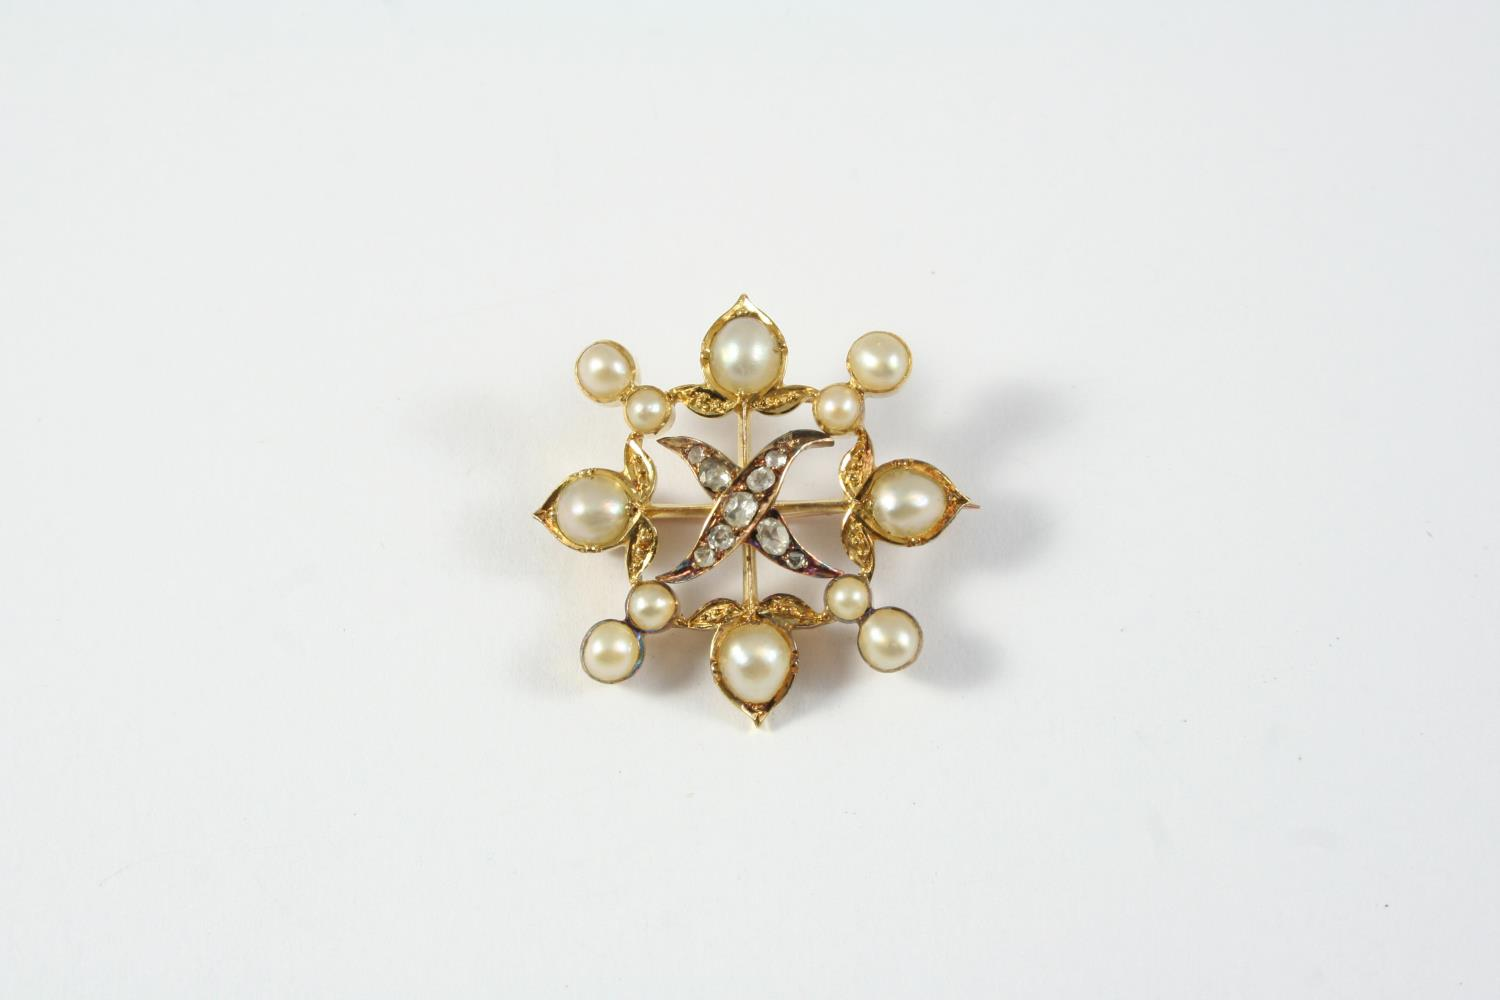 A DIAMOND AND PEARL QUATREFOIL BROOCH mounted with rose-cut diamonds and graduated half pearls, in